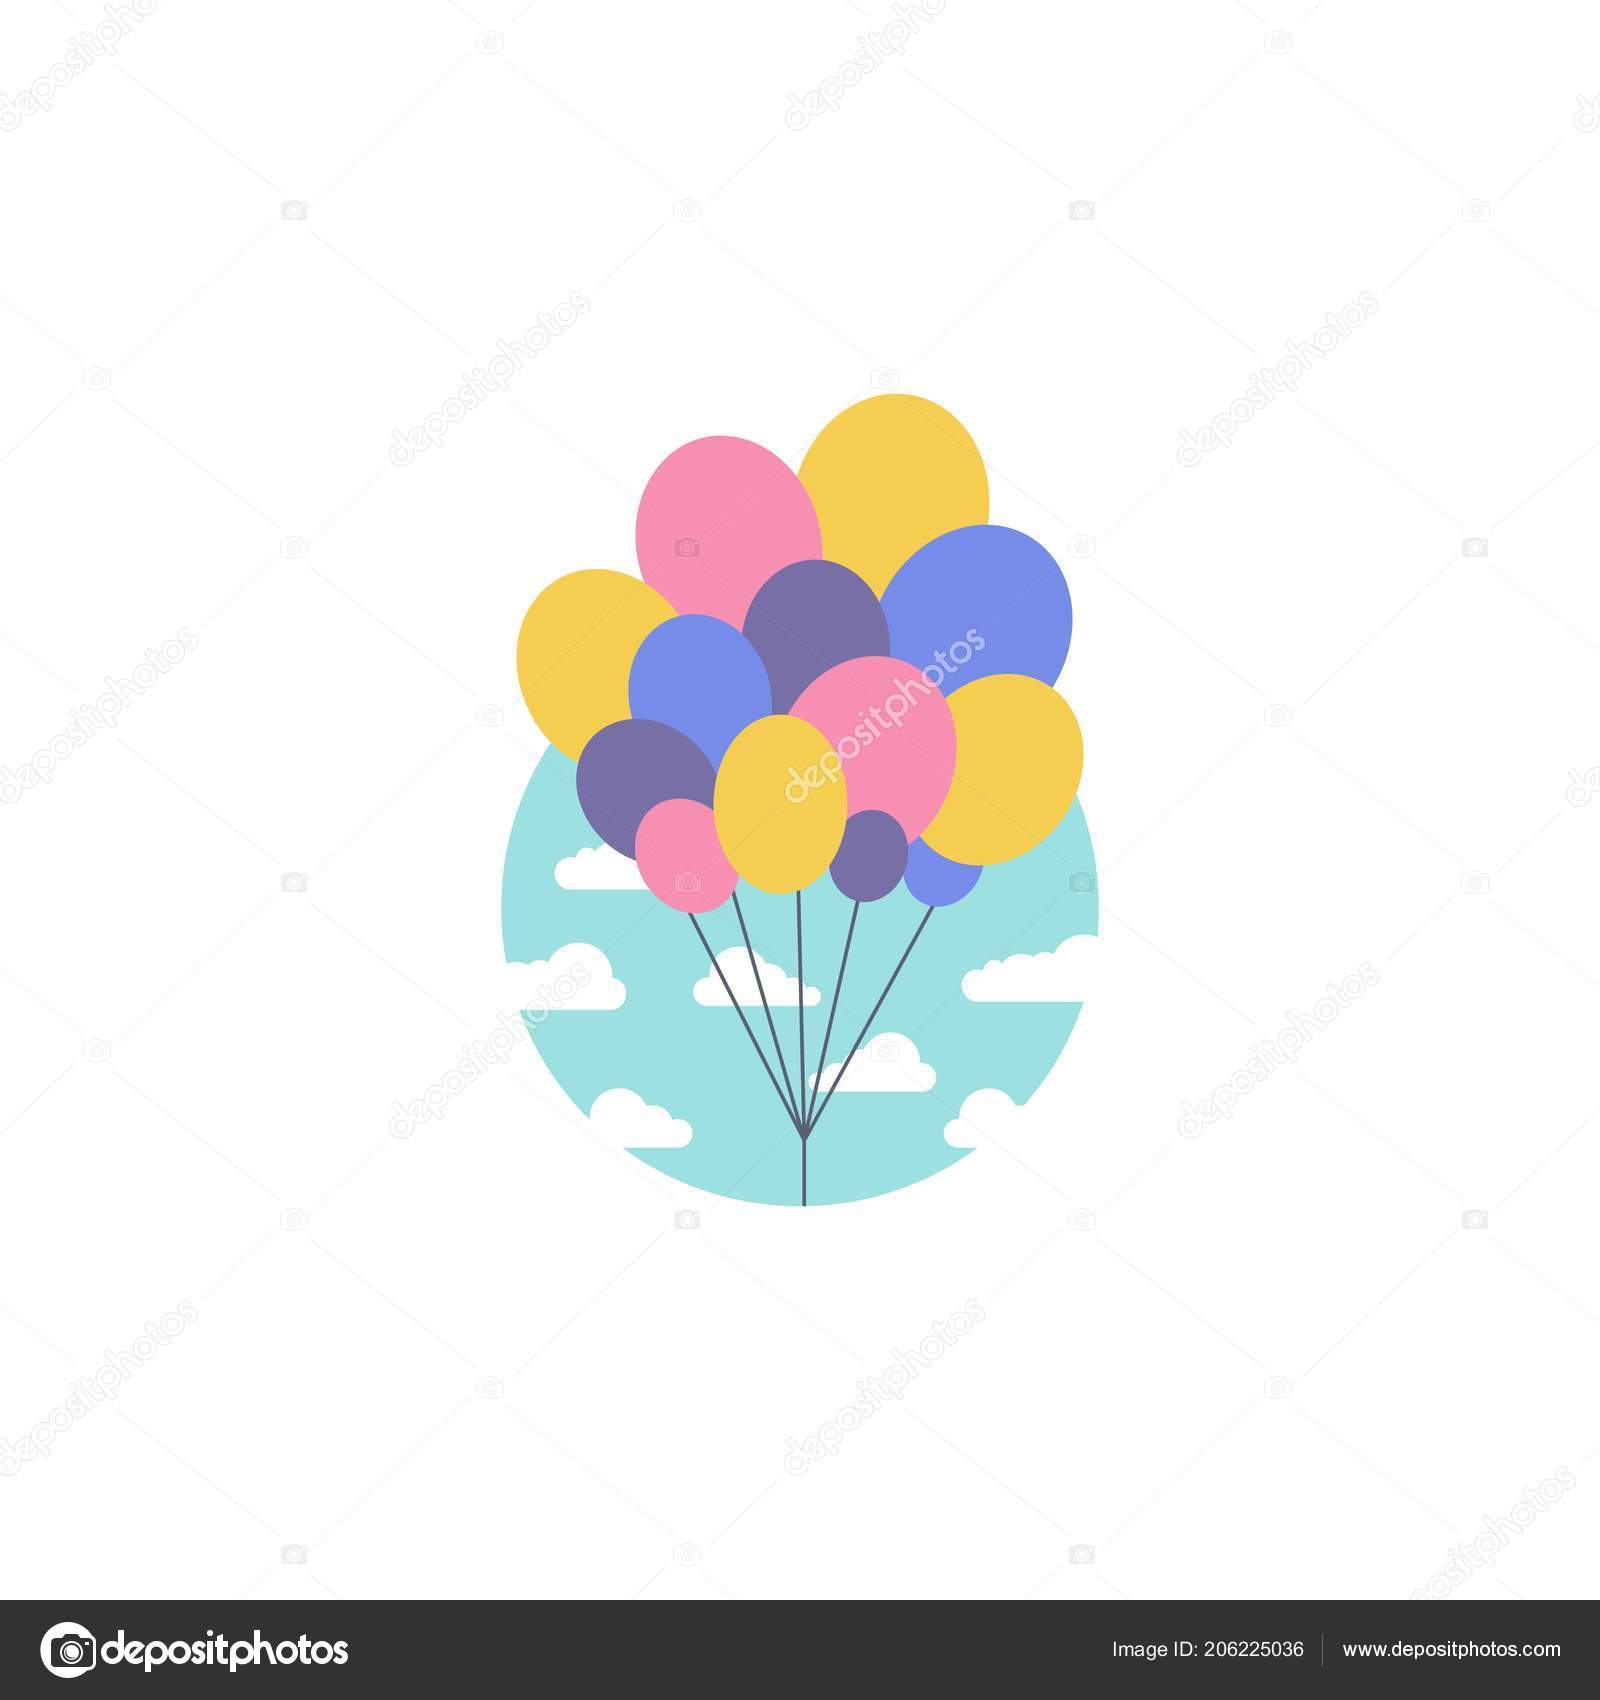 flat vector illustration of colored balloons in the sky invitation